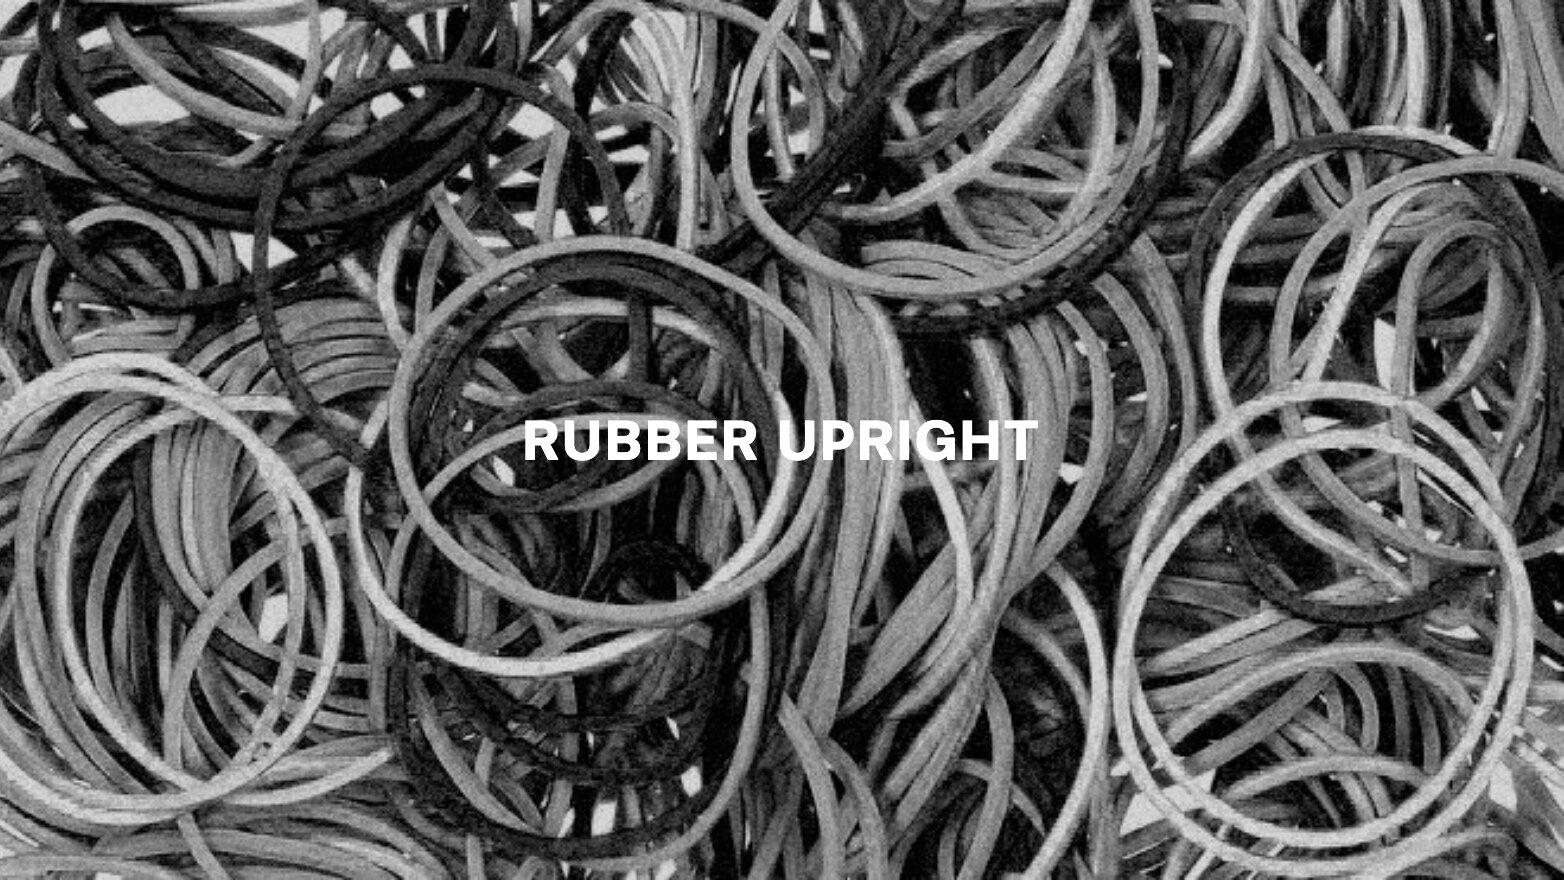 Rubber Upright Text.jpg